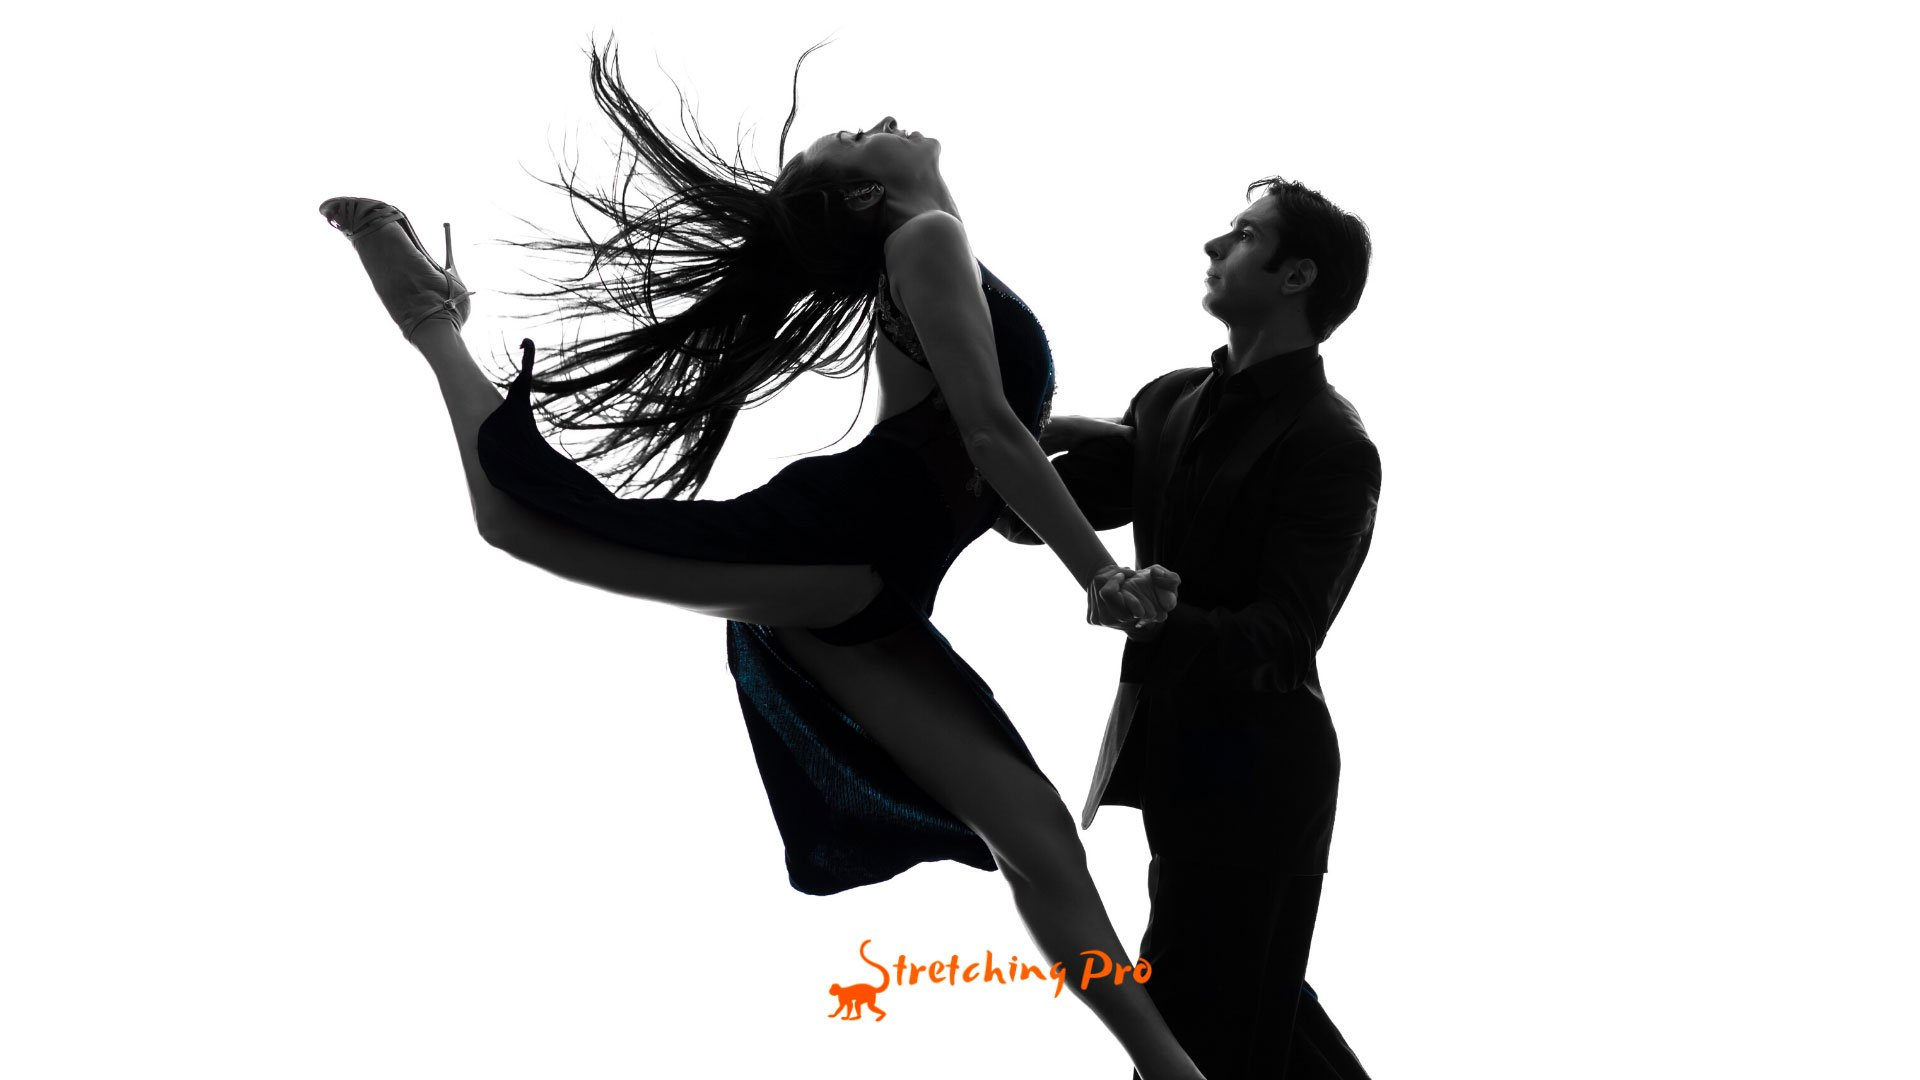 stretchingpro-étirements-danse-couple